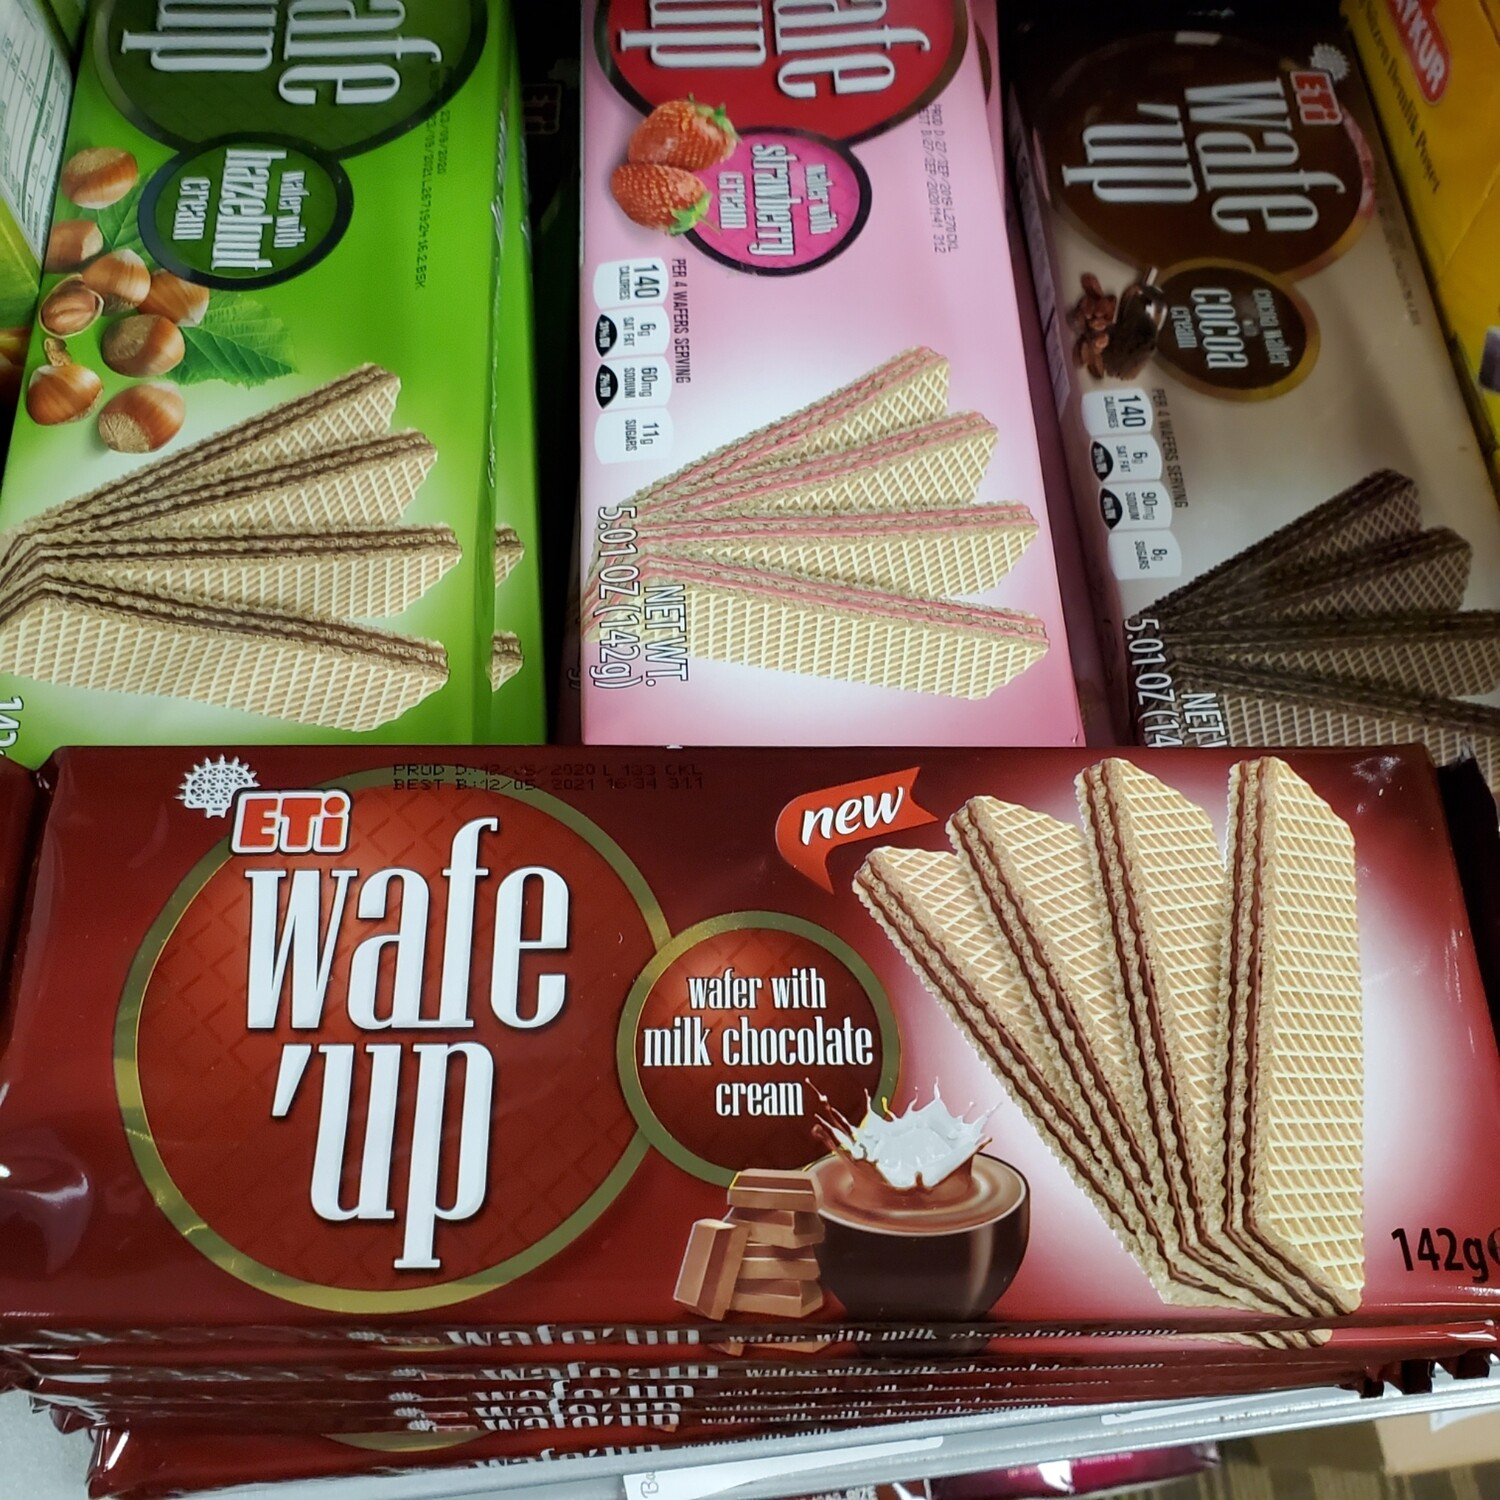 Eti Hosbes WAFE UP wafer with chocolate cream142GR